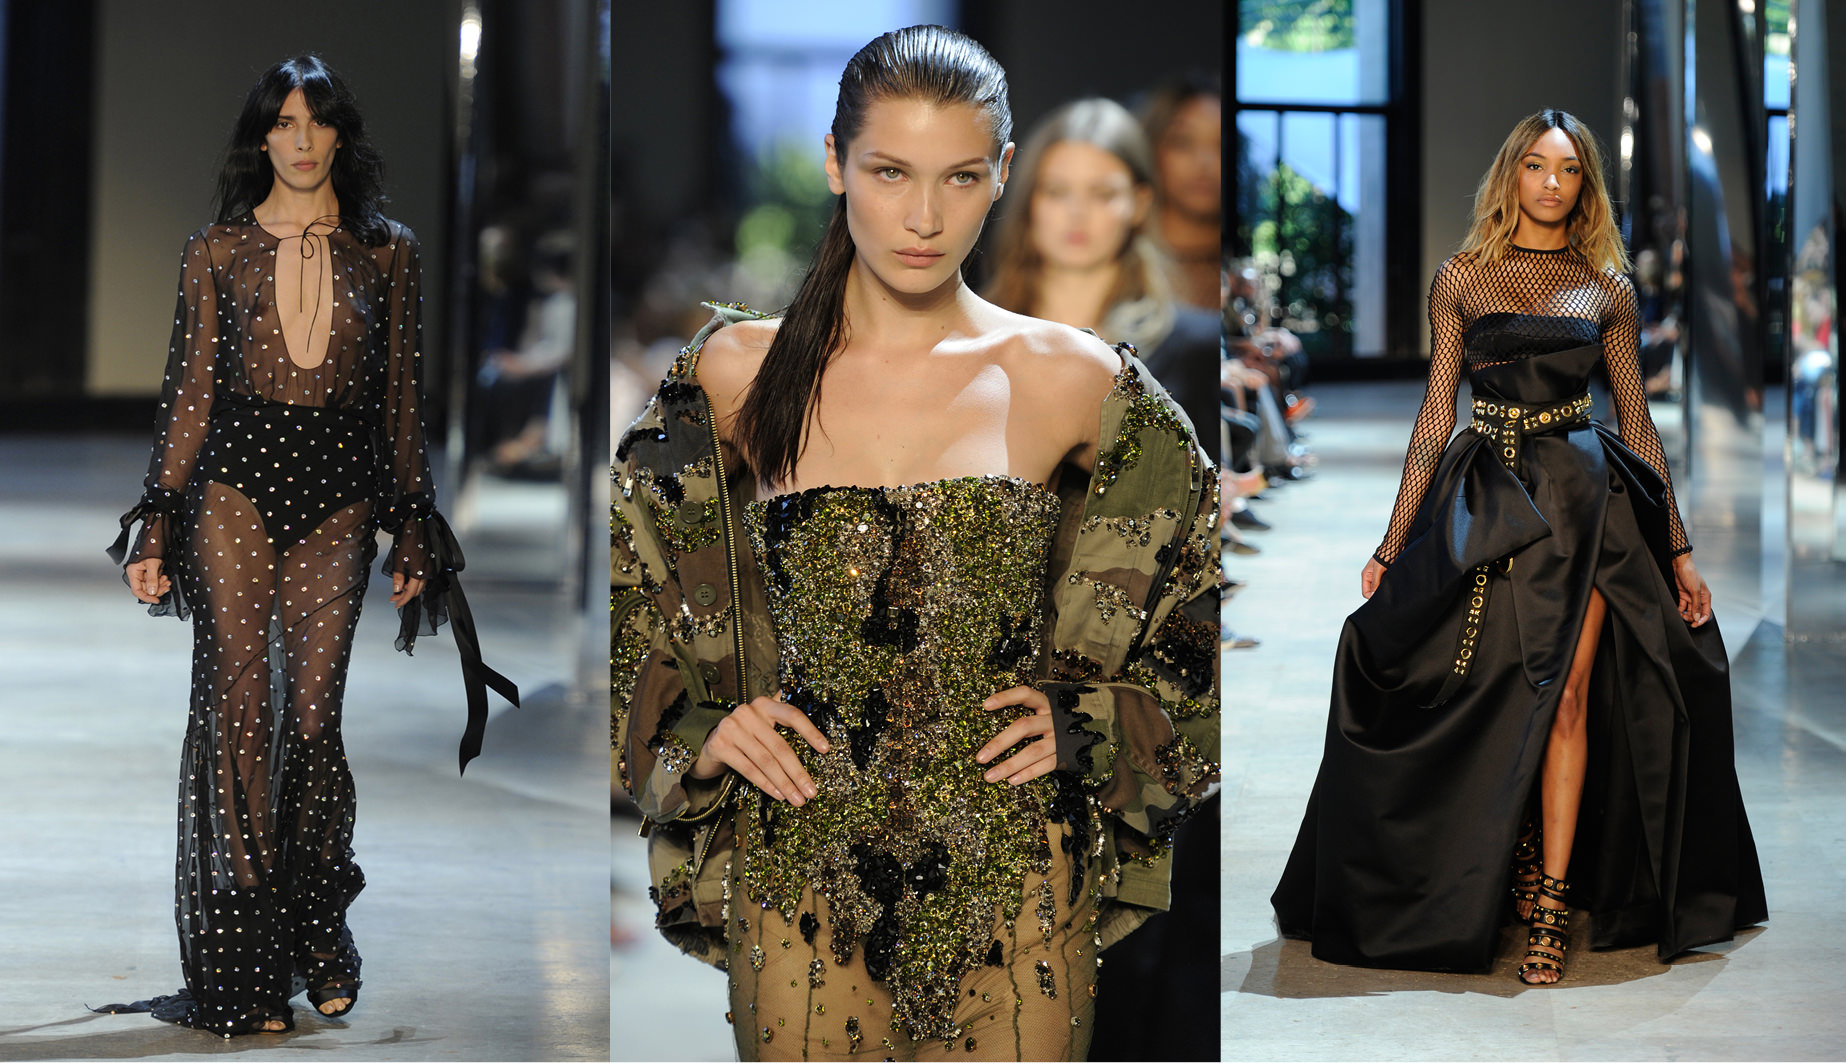 The Alexandre Vauthier fall-winter 2016-2017 haute couture show   Numéro: Bella Hadid, Jourdan Dunn and Cindy Bruna all walked for you this season…  Alexandre Vauthier: I'm so thrilled these girls, who are dreams come true, were happy to be there. They want to take part in the show and to wear my clothes. I think they're very excited by the energy of the show, but also by what they can express here through the clothes. I really try to balance my line up of girls because it's very important to me to represent a varied slice of femininity. I want to mix up different physical genres, the sensuality of Bella Hadid and the elegance of Guinevere.